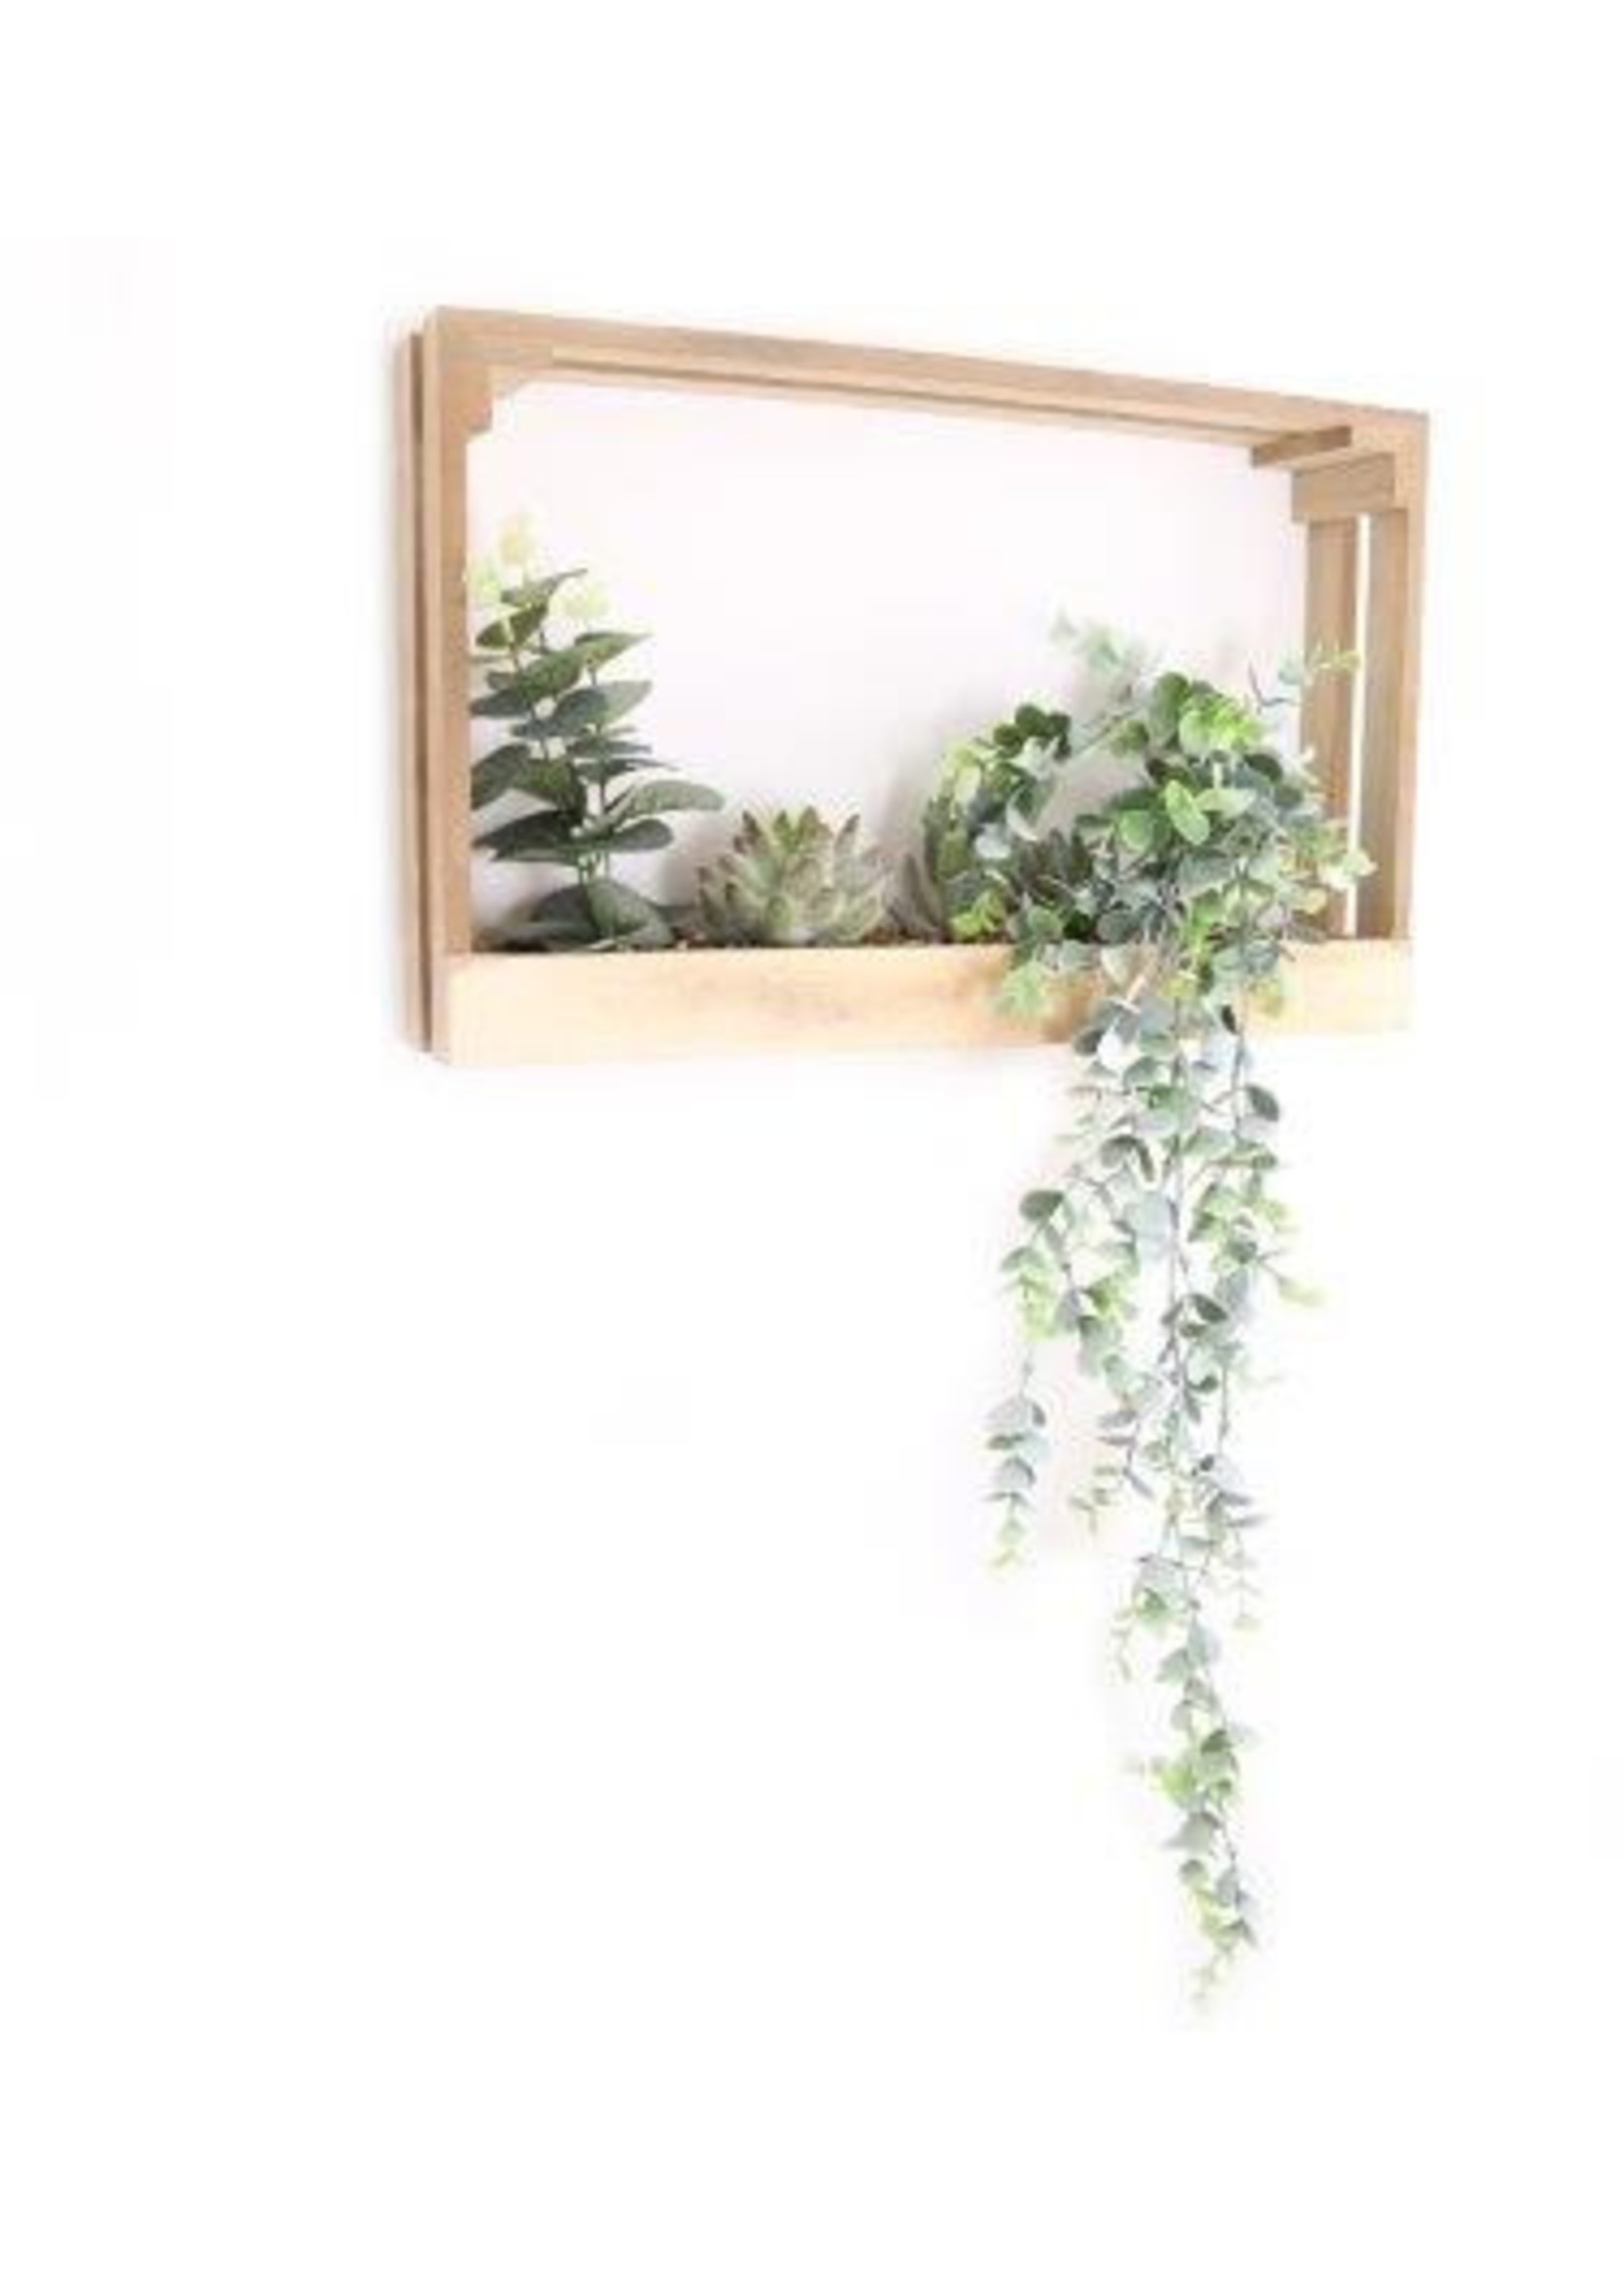 Crate With Artificial Plants